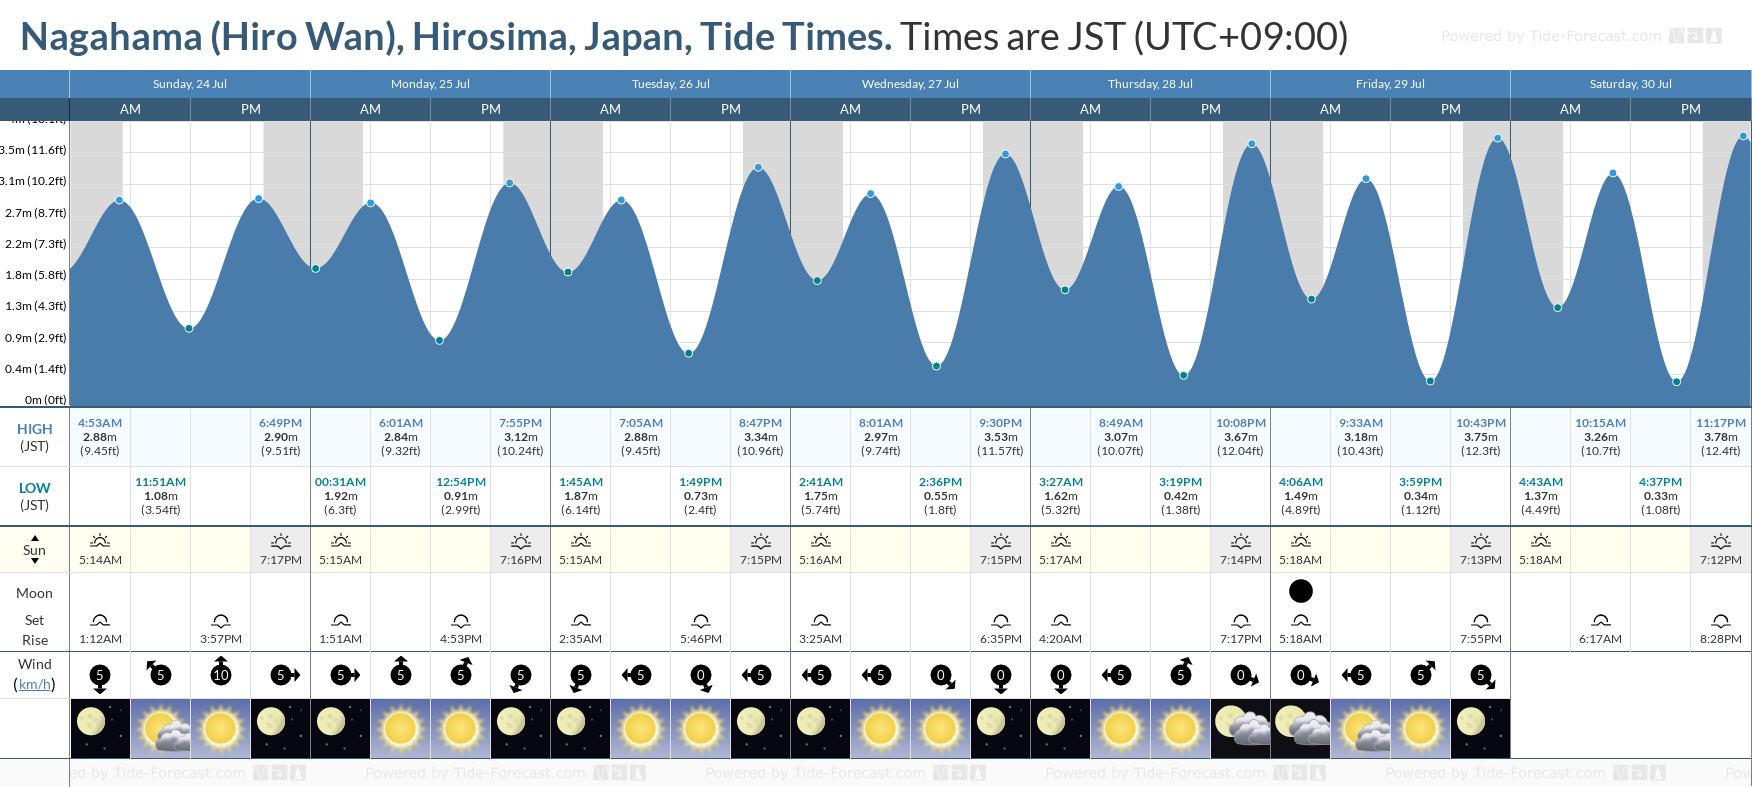 Nagahama (Hiro Wan), Hirosima, Japan Tide Chart including high and low tide tide times for the next 7 days